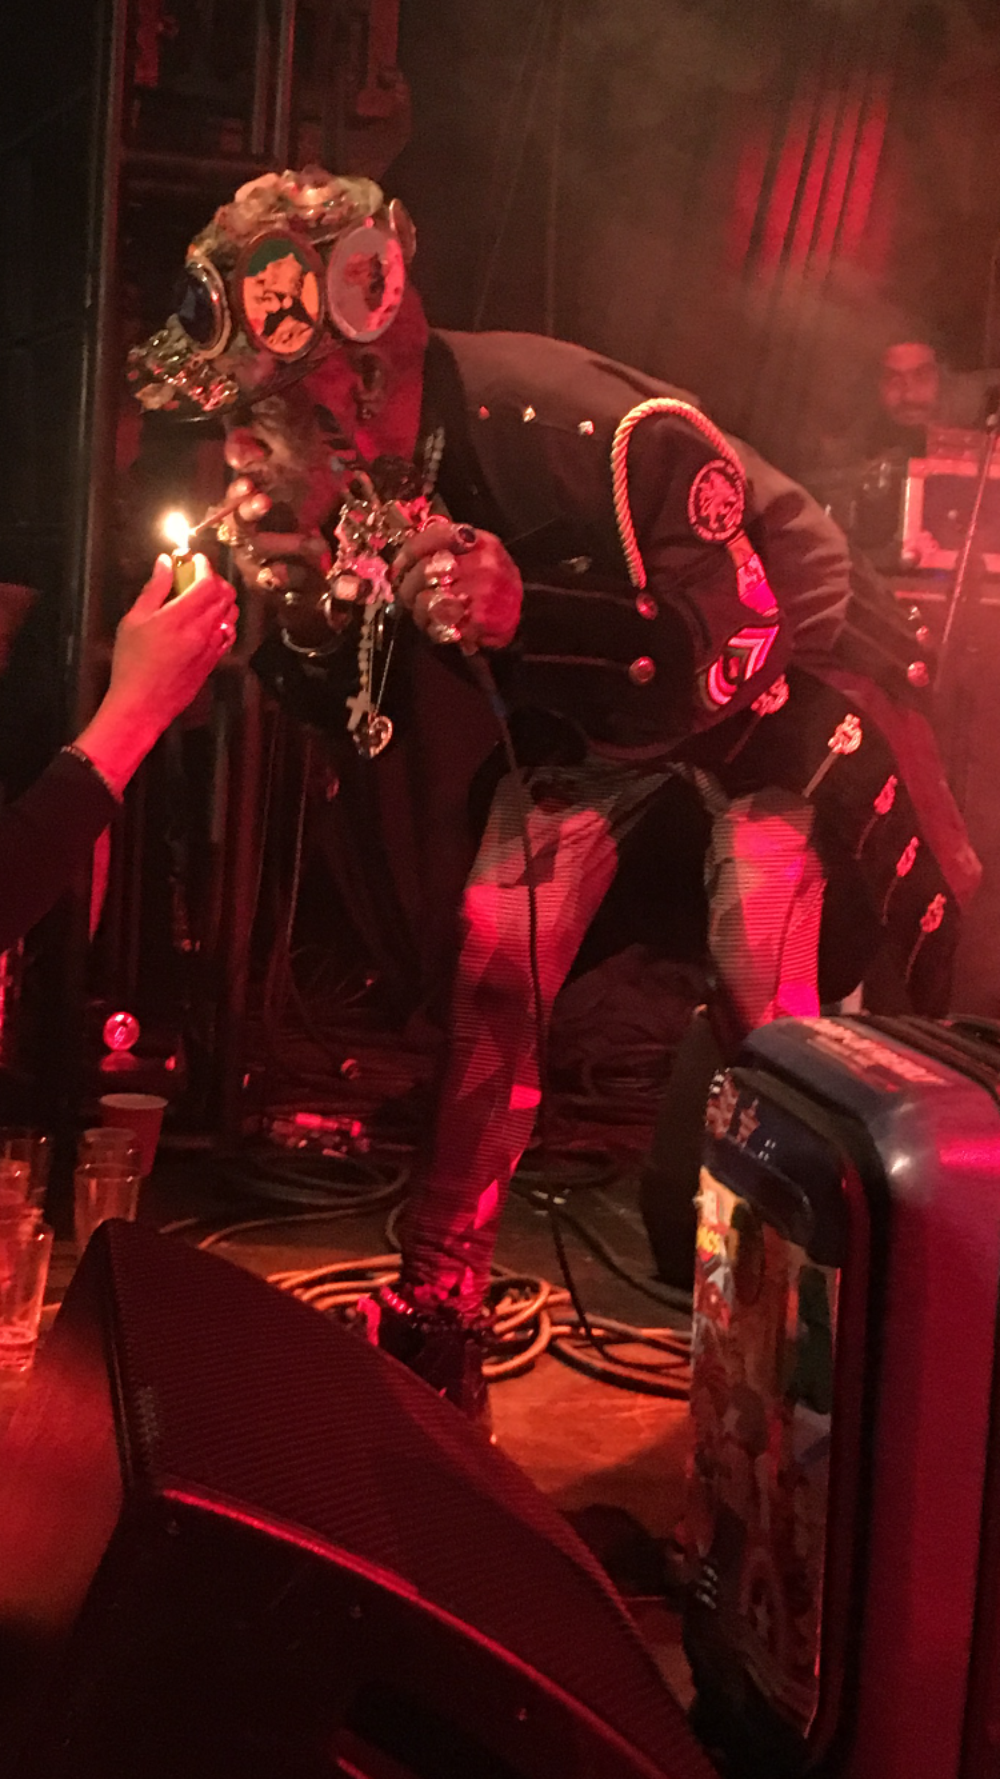 """Lee """"Scratch""""Perryperforming at the Dub Club in Los Angeles   Courtesy of Stephen A. Cooper"""